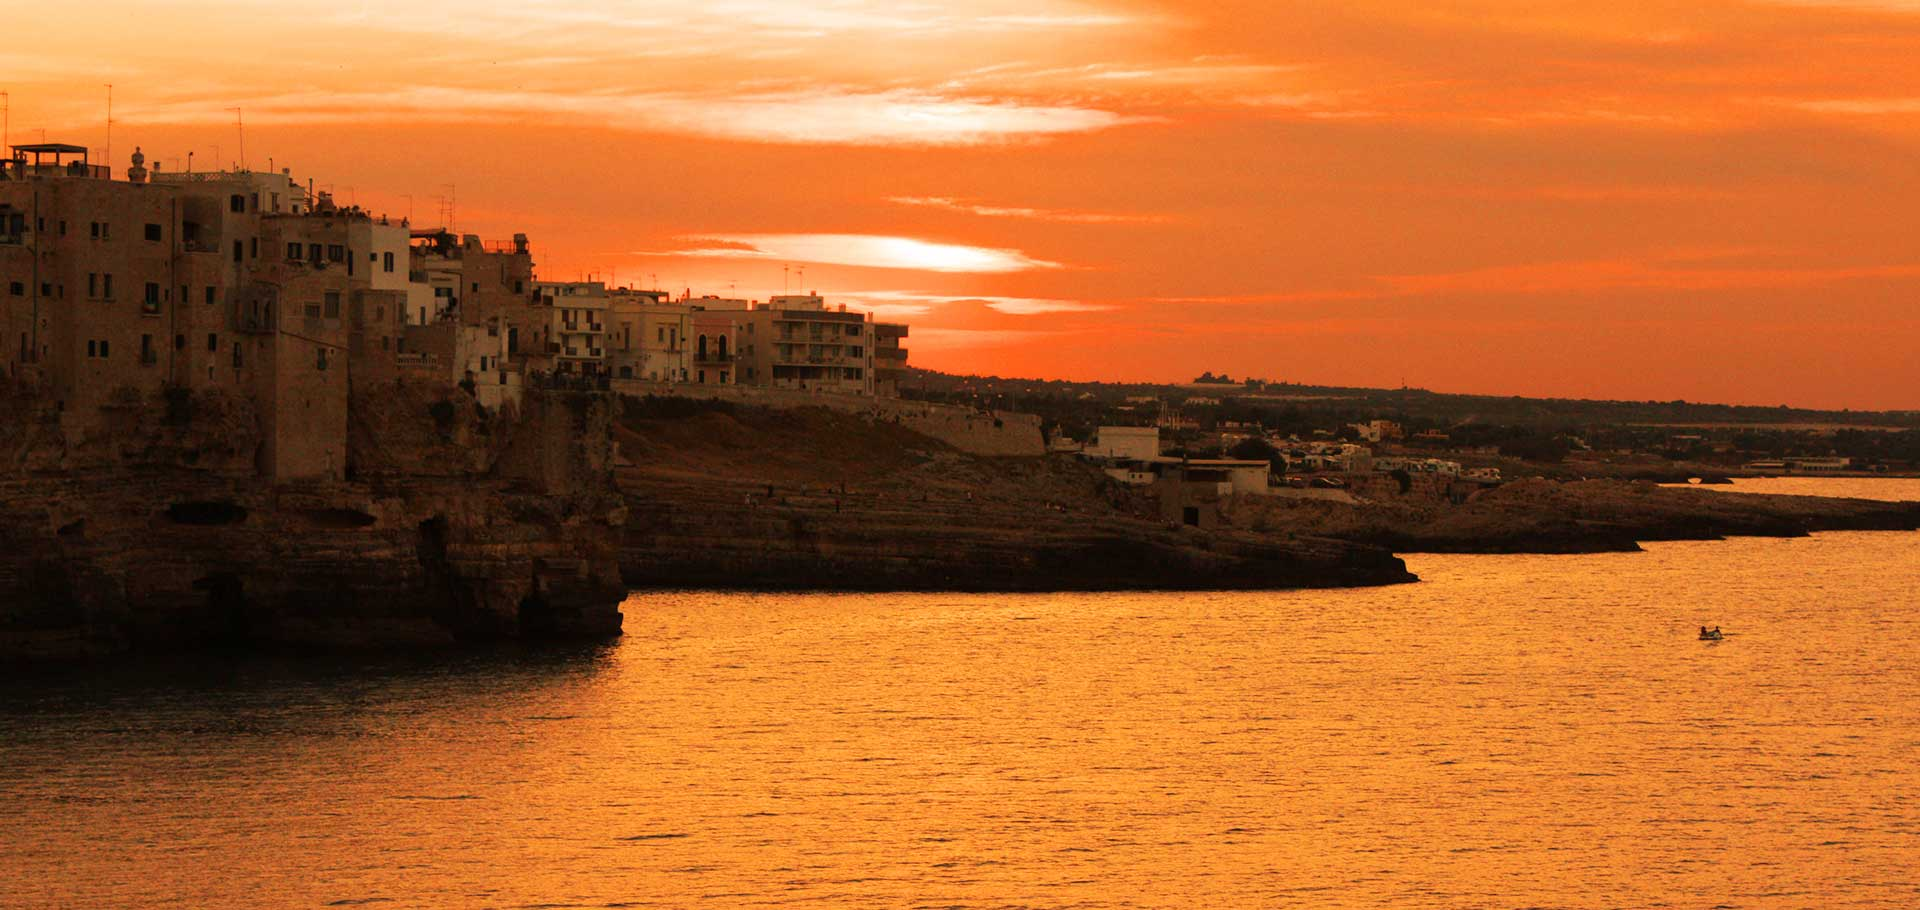 sunset over polignano a mare